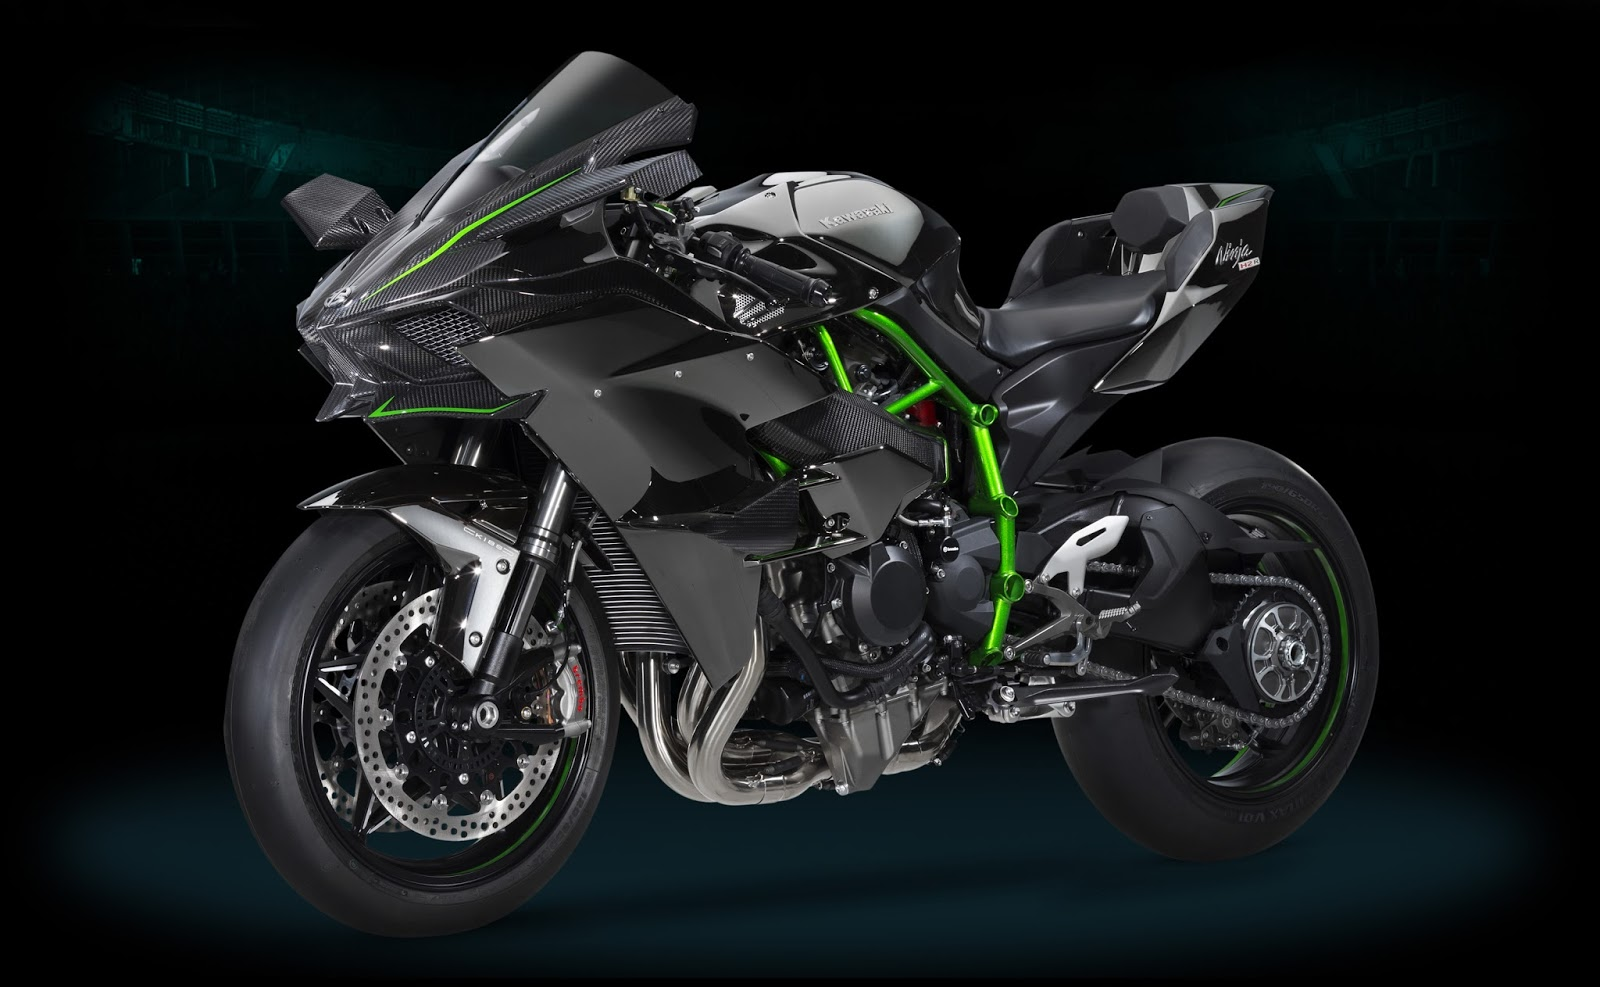 kawasaki ninja 650r hd wallpaper